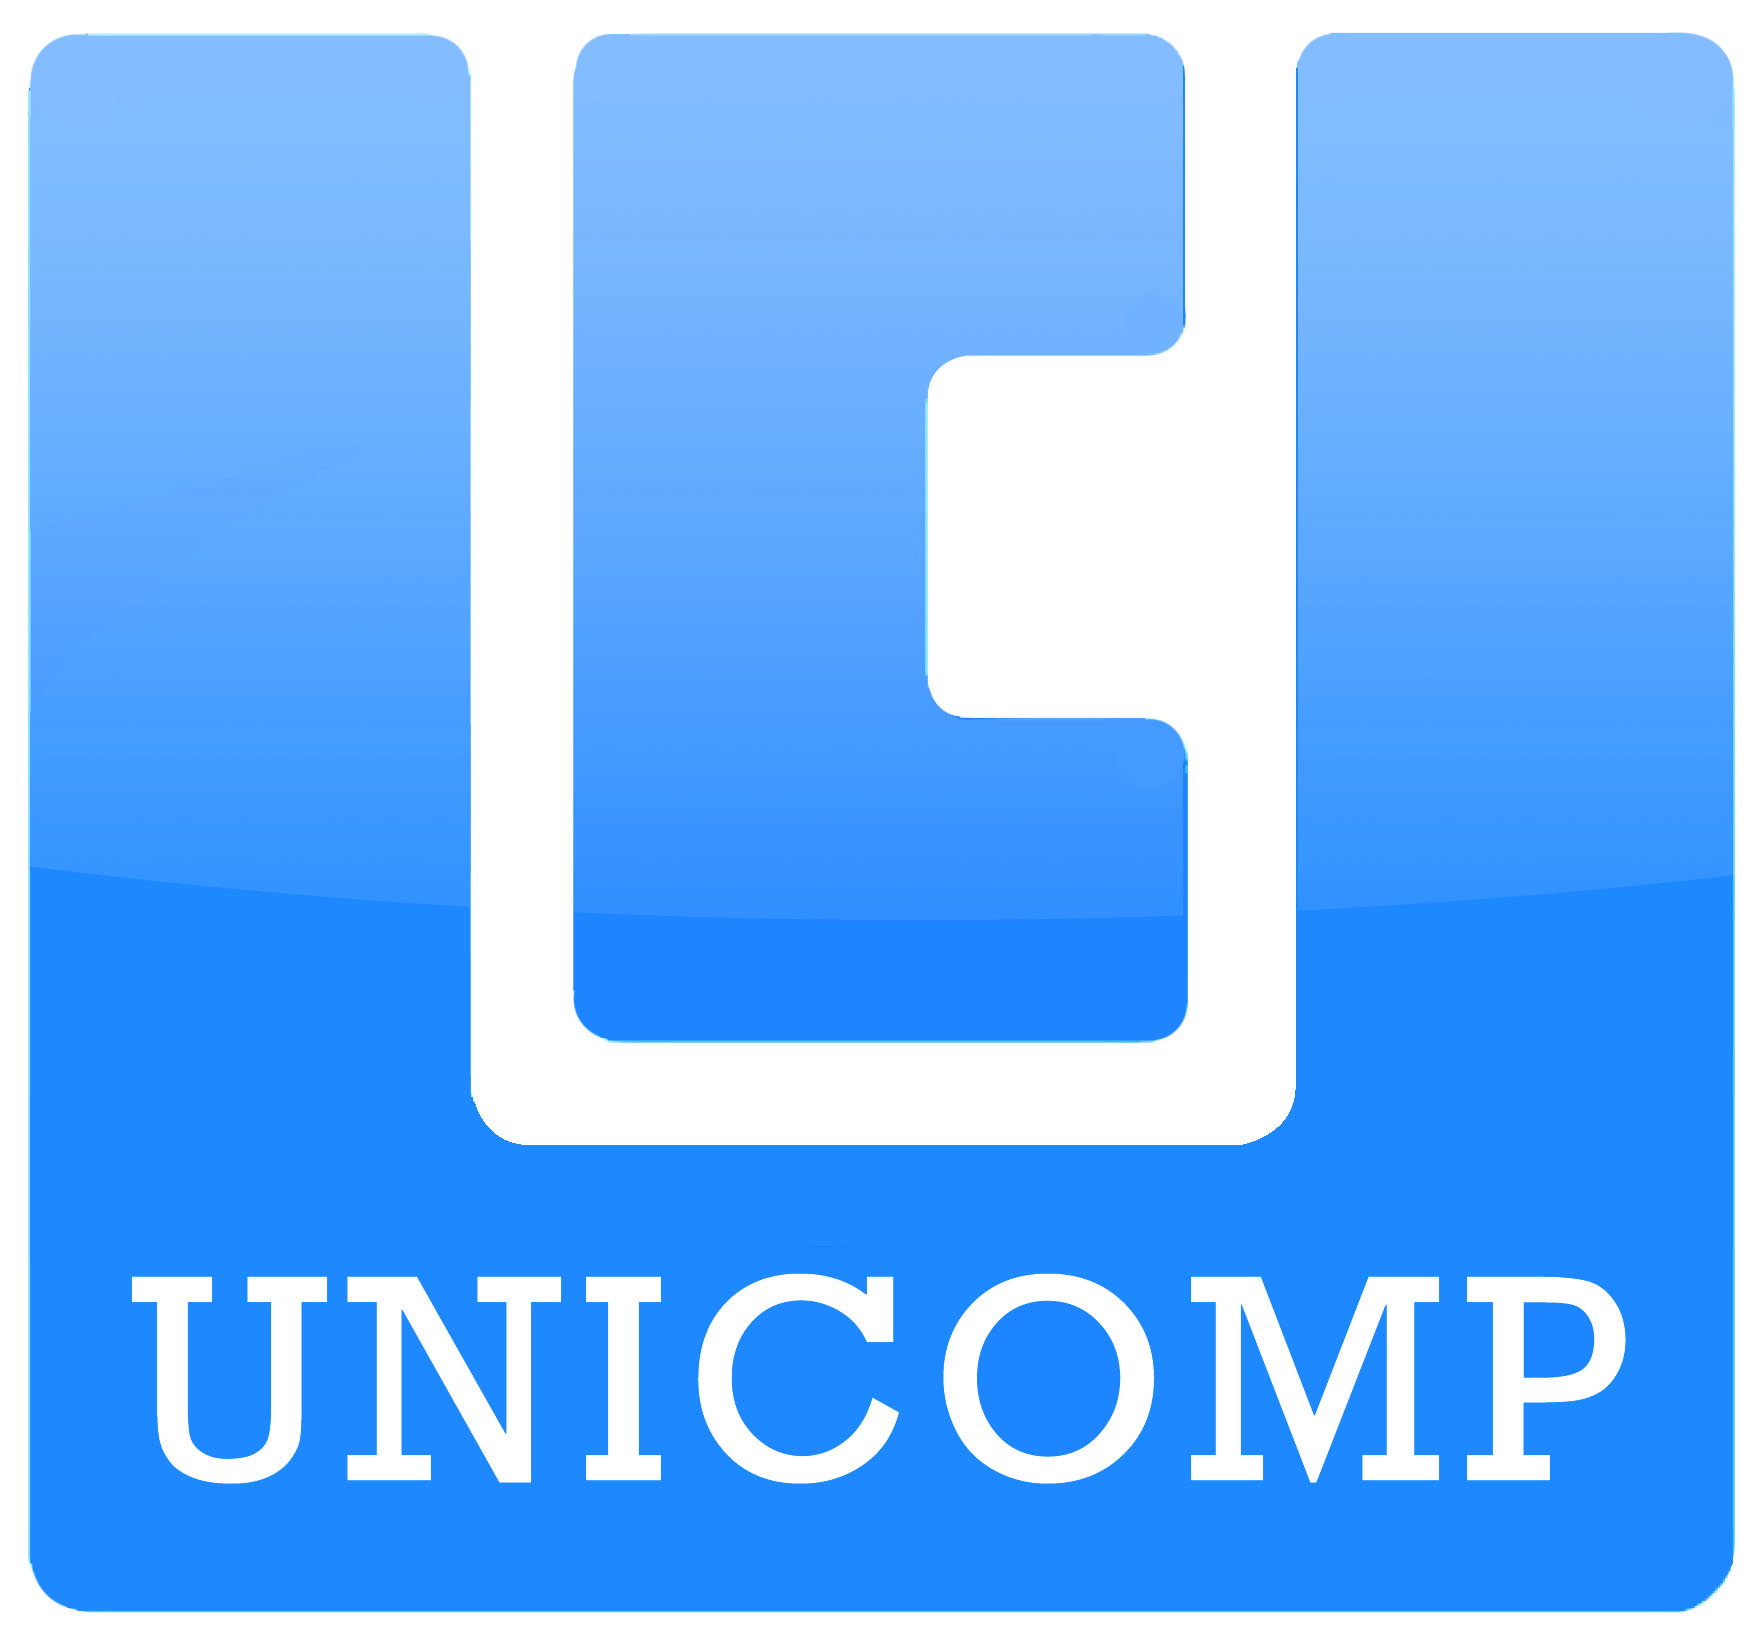 Unicomplogo